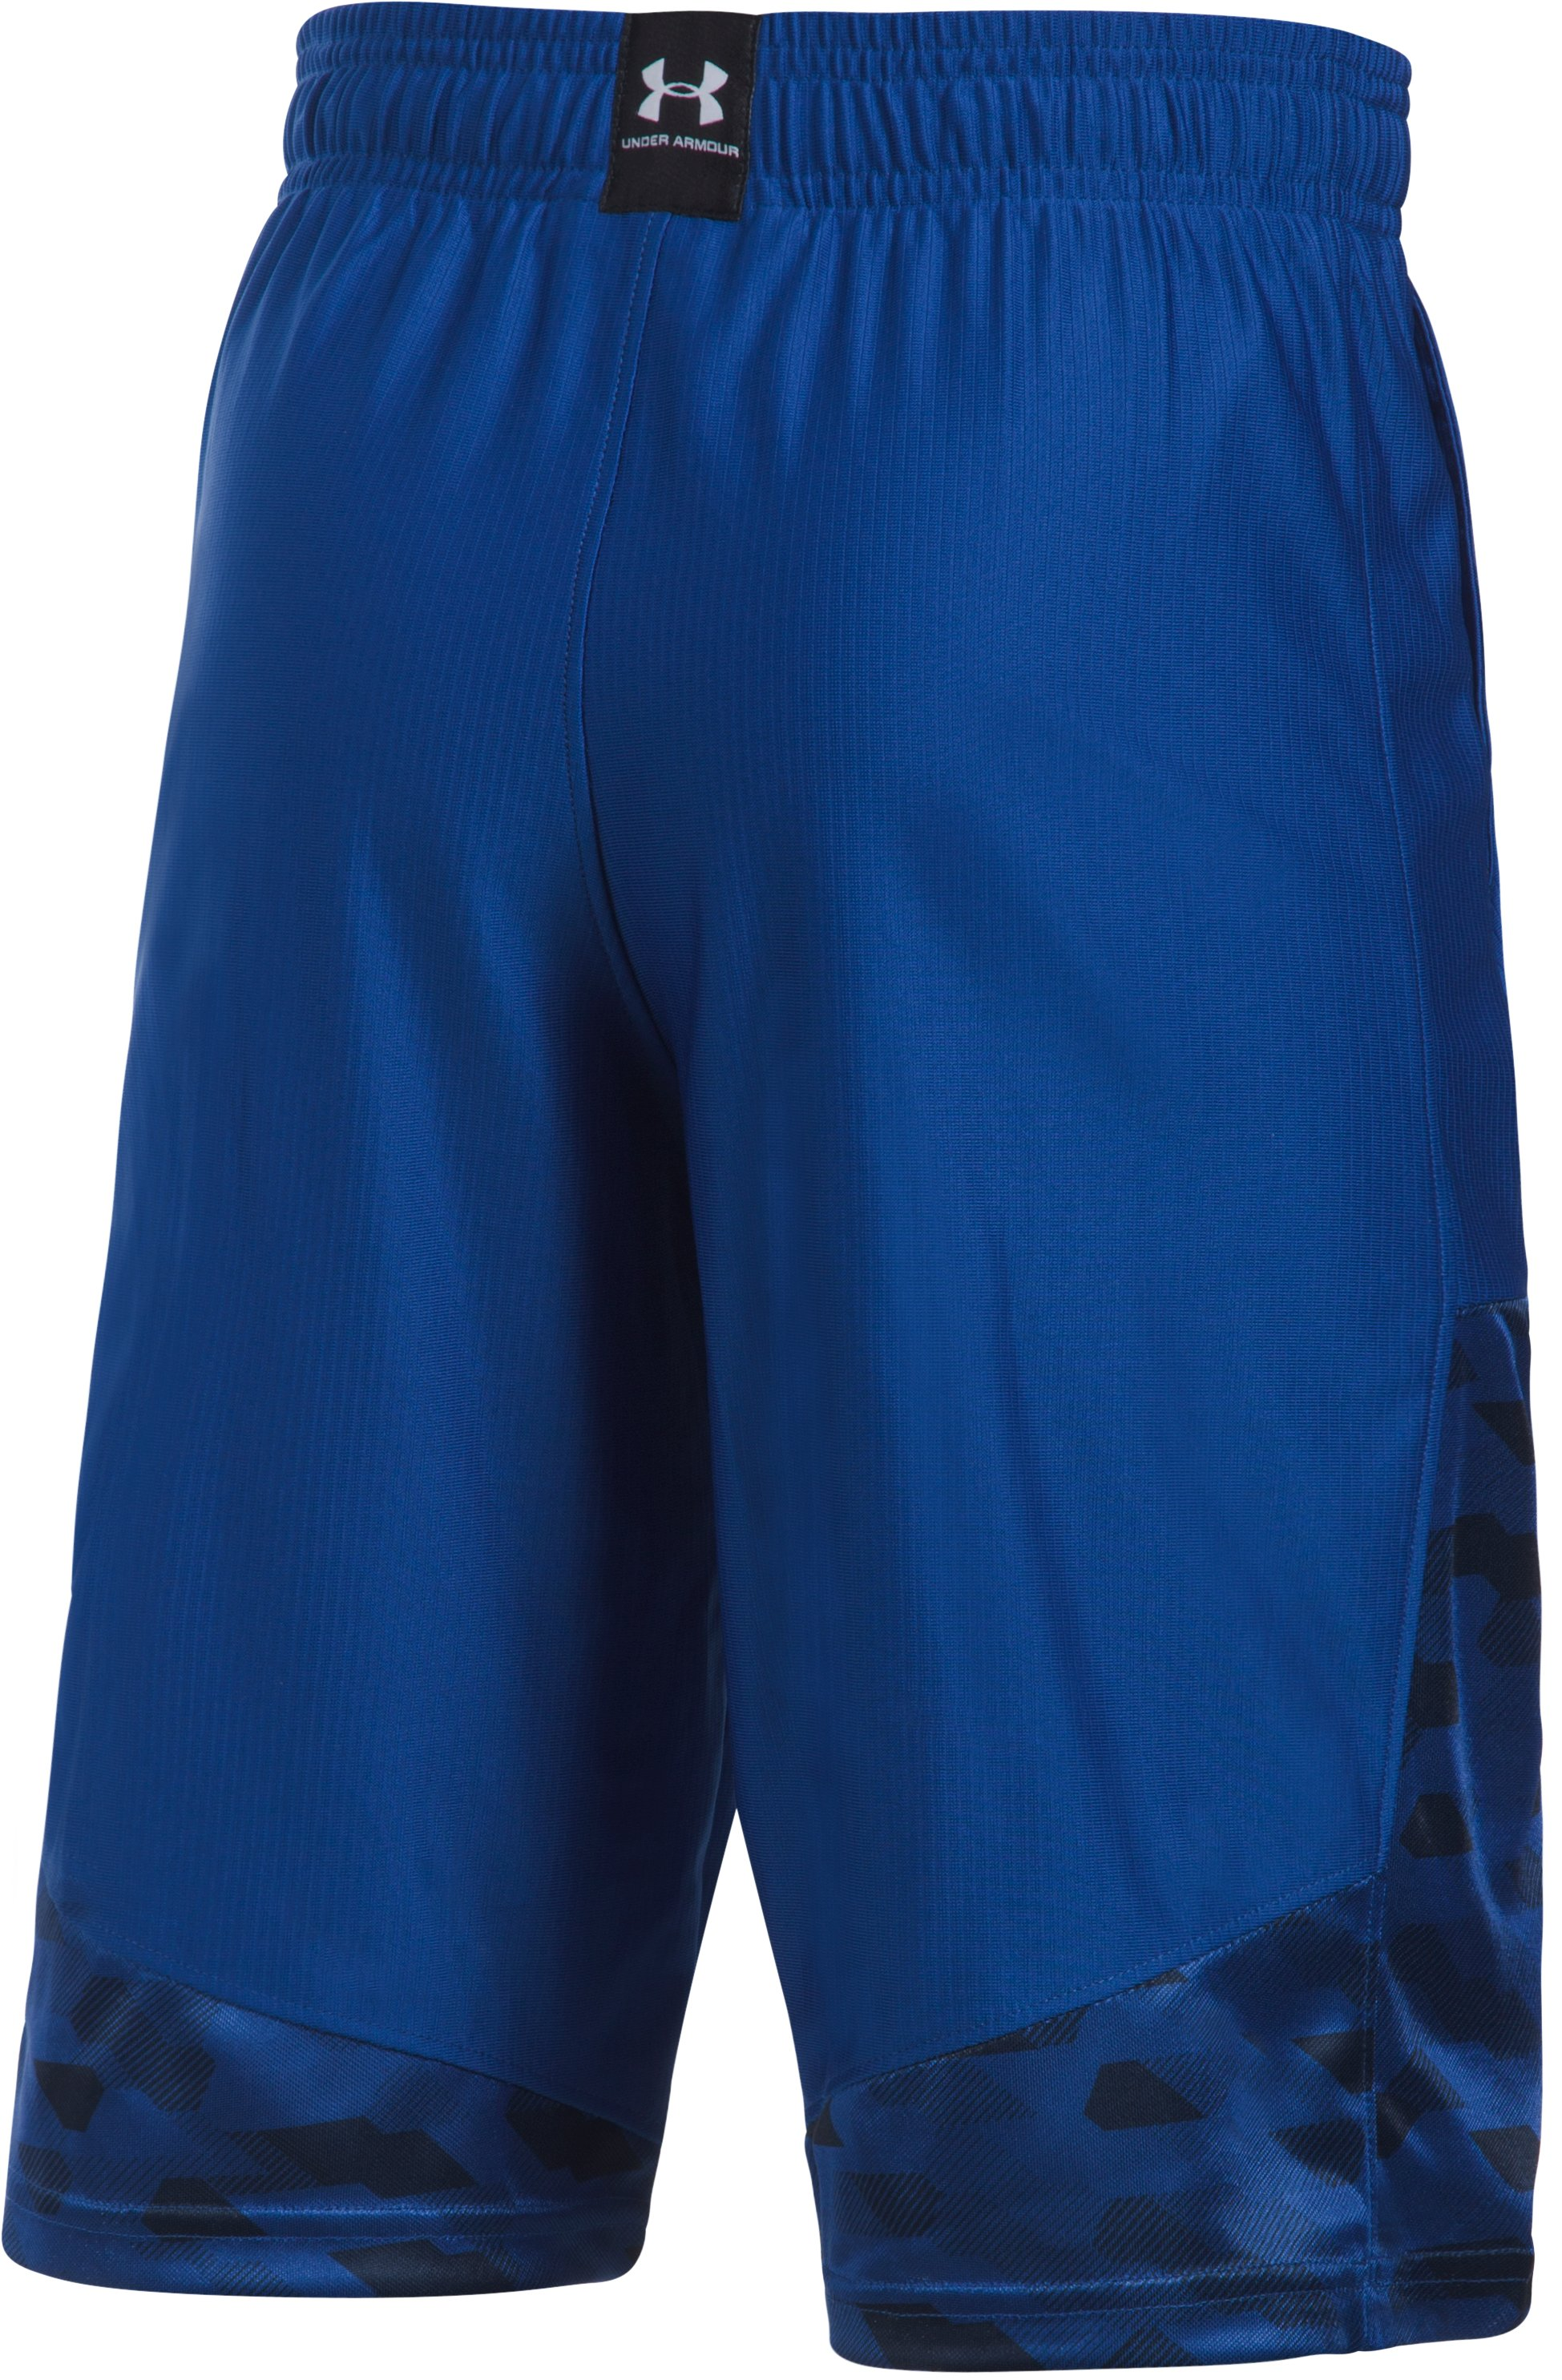 Boys' SC30 Performance Shorts, Royal